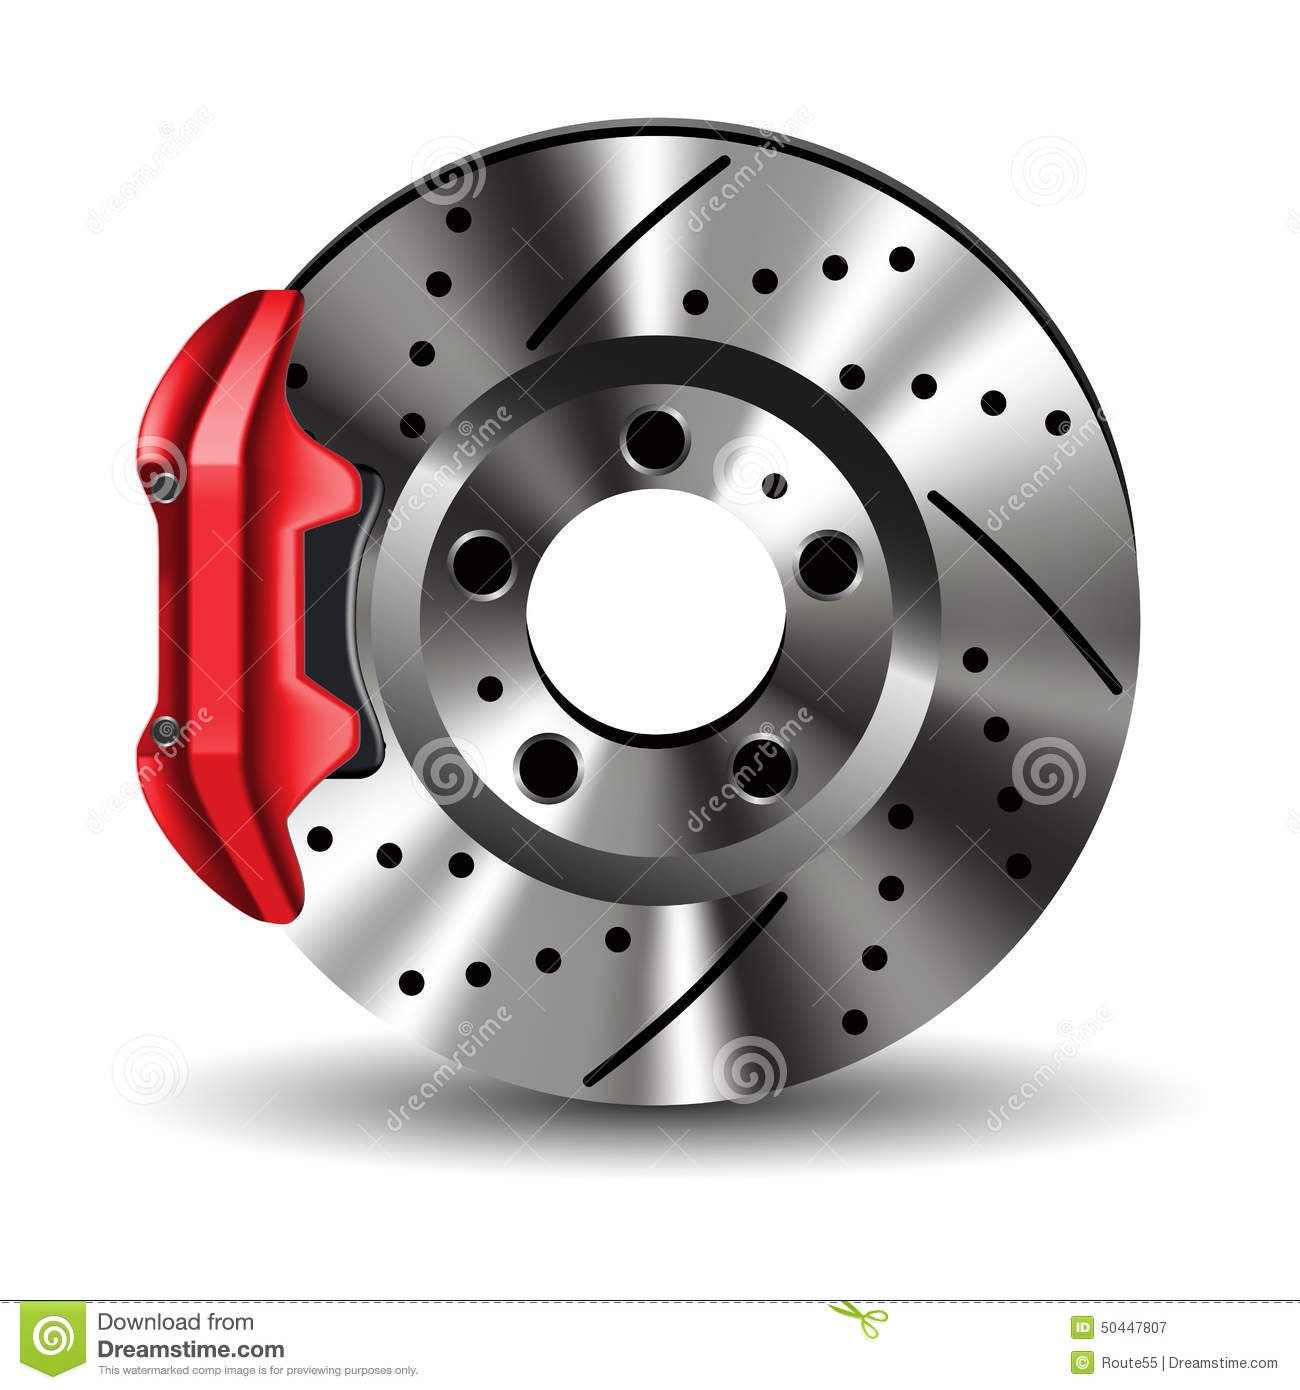 Brake Pads And Rotors Prices >> Brake Disc Stock Vector - Image: 50447807